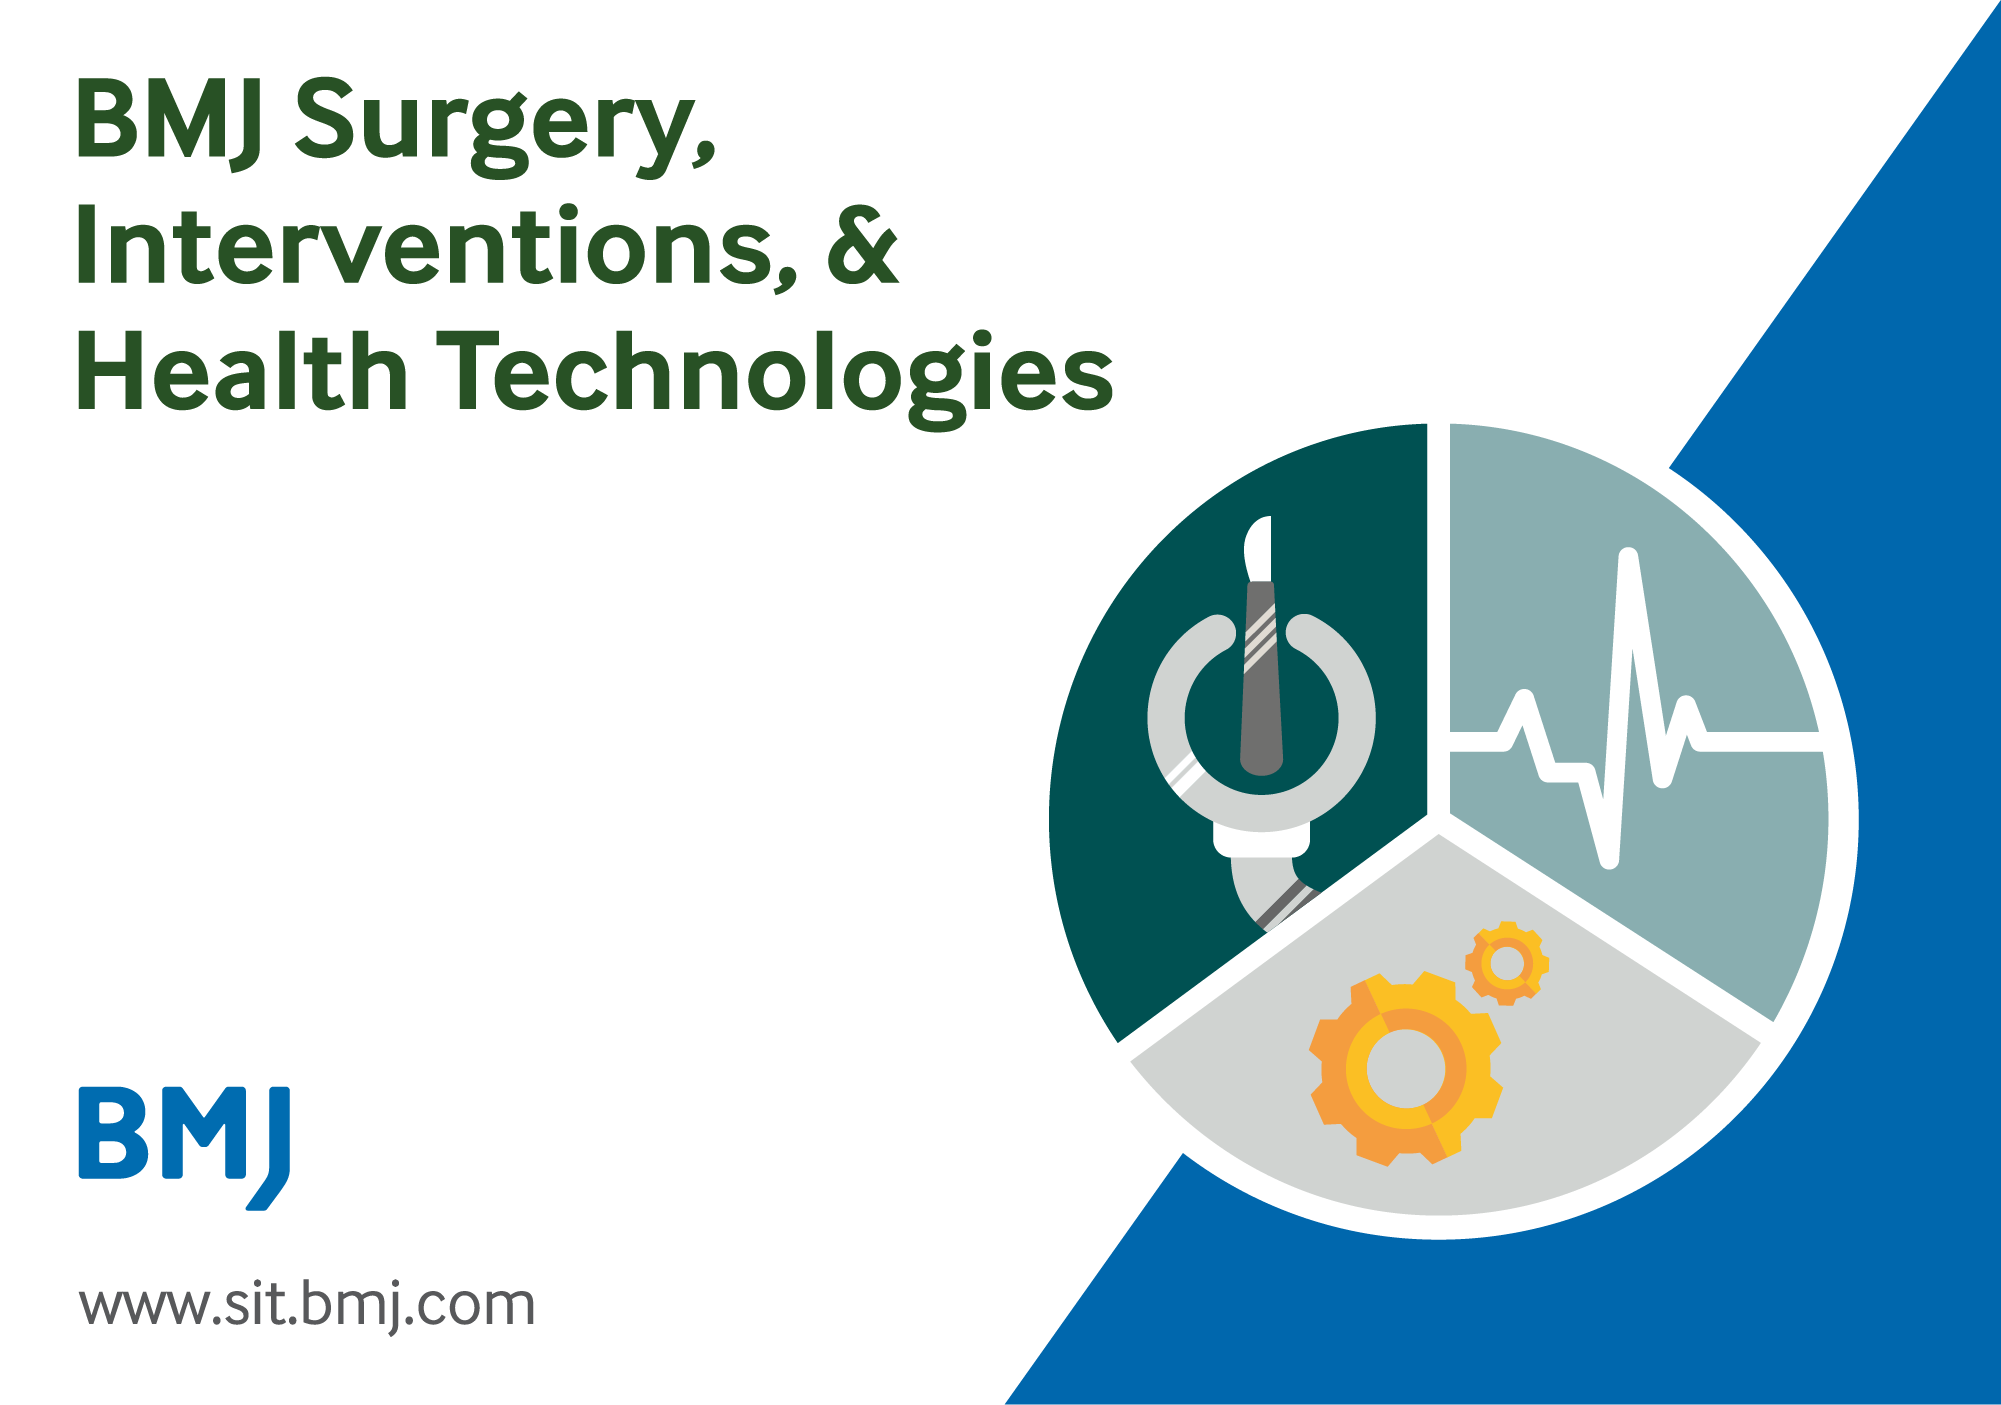 NEW! BMJ SURGERY, INTERVENTIONS & HEALTH TECHNOLOGIES: